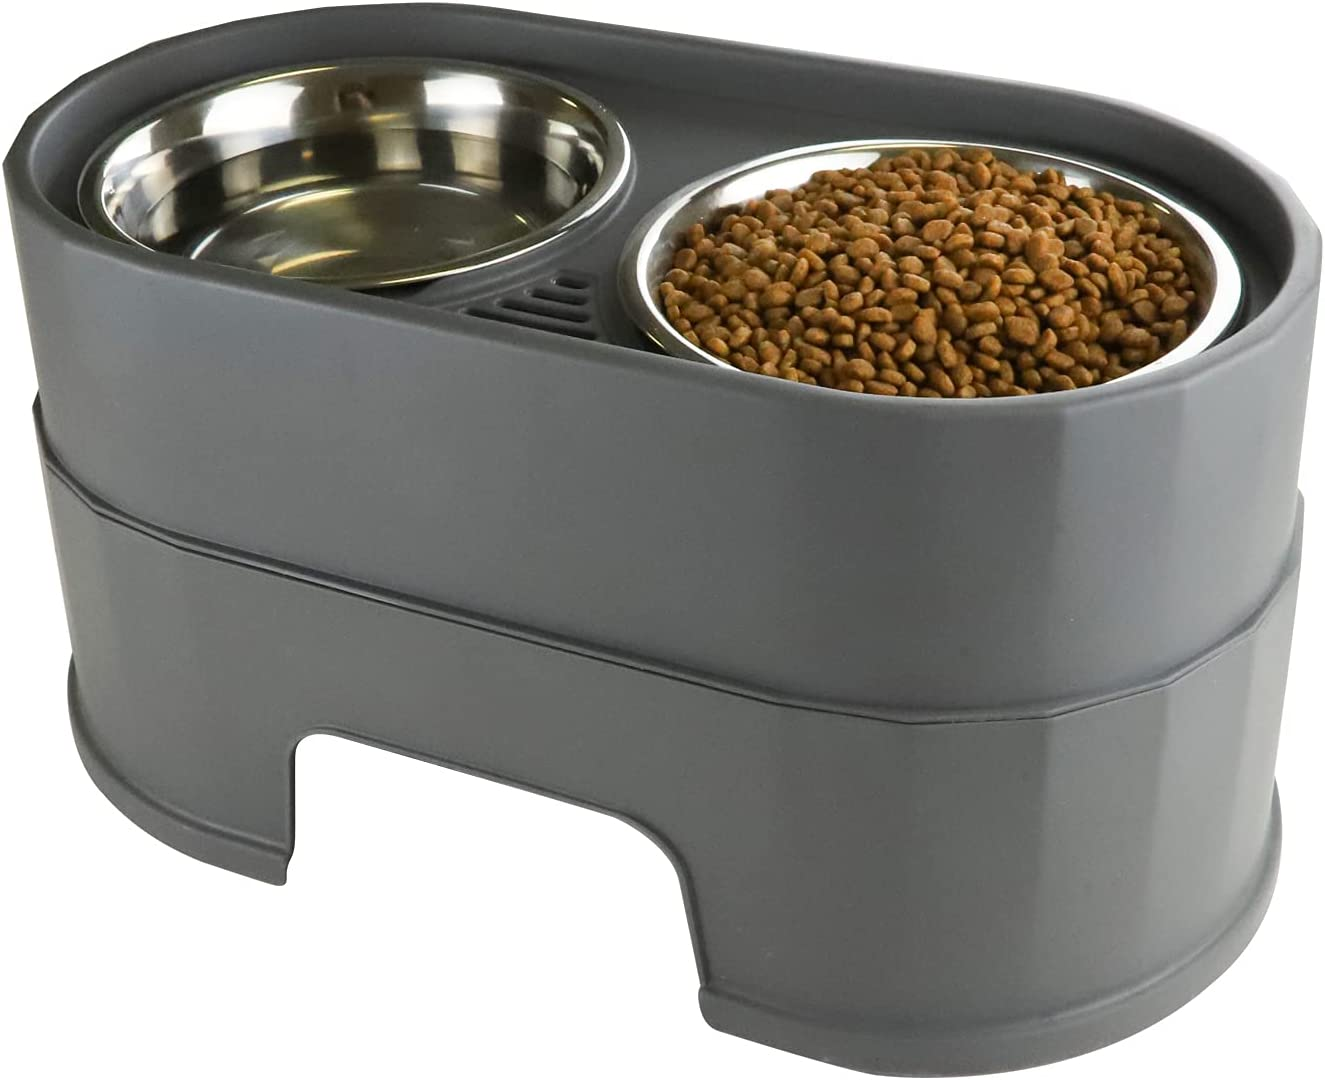 RIZZARI Raised Dog Ranking TOP13 Bowls Stainless Steel Pet a Trust Cat Dish Food